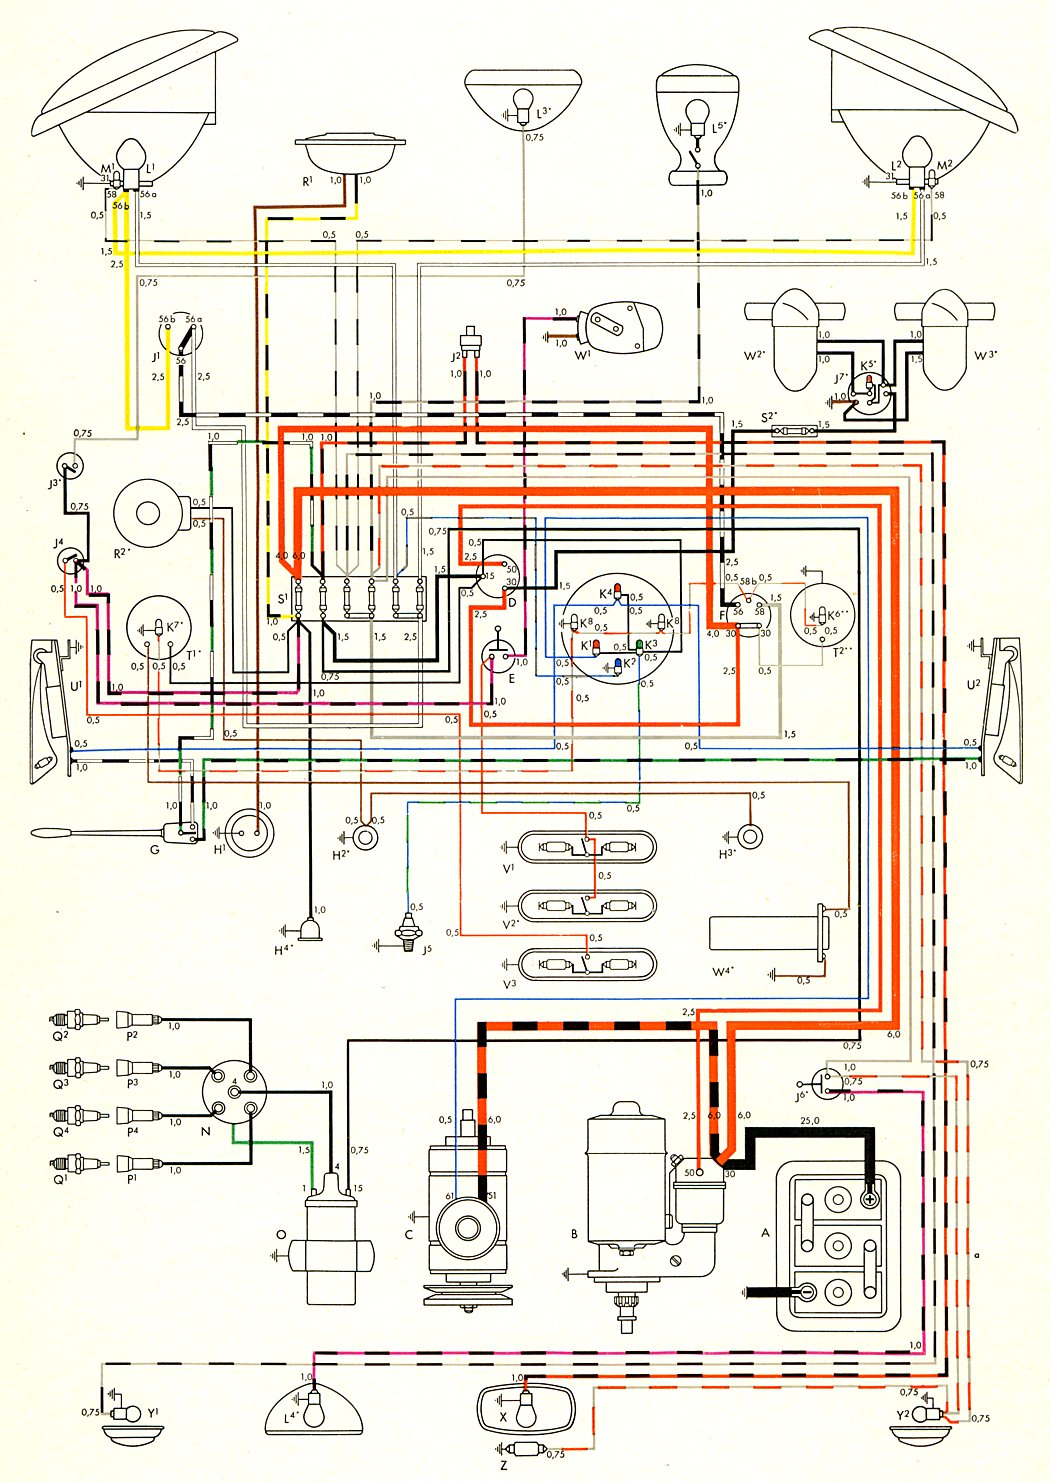 bus_nov57 bus wiring diagram vw wiring harness diagram \u2022 wiring diagrams j VW Bus Ignition Coil at cos-gaming.co